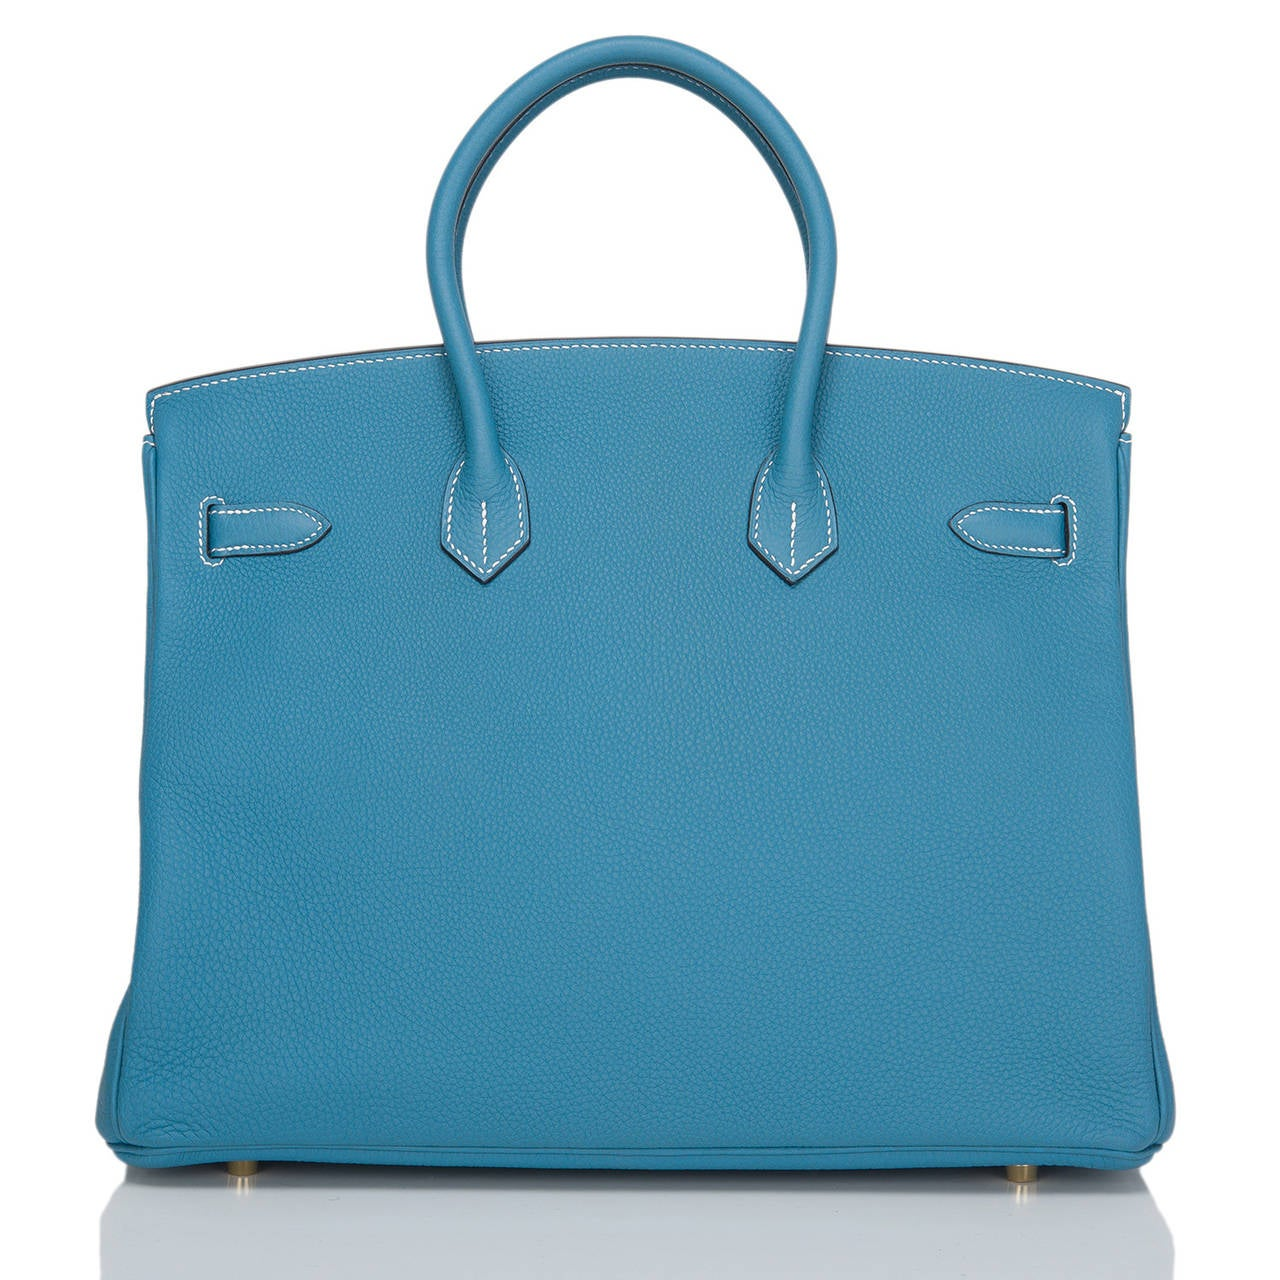 hermes knockoffs - Hermes Blue Jean Togo Birkin 35cm Gold Hardware at 1stdibs